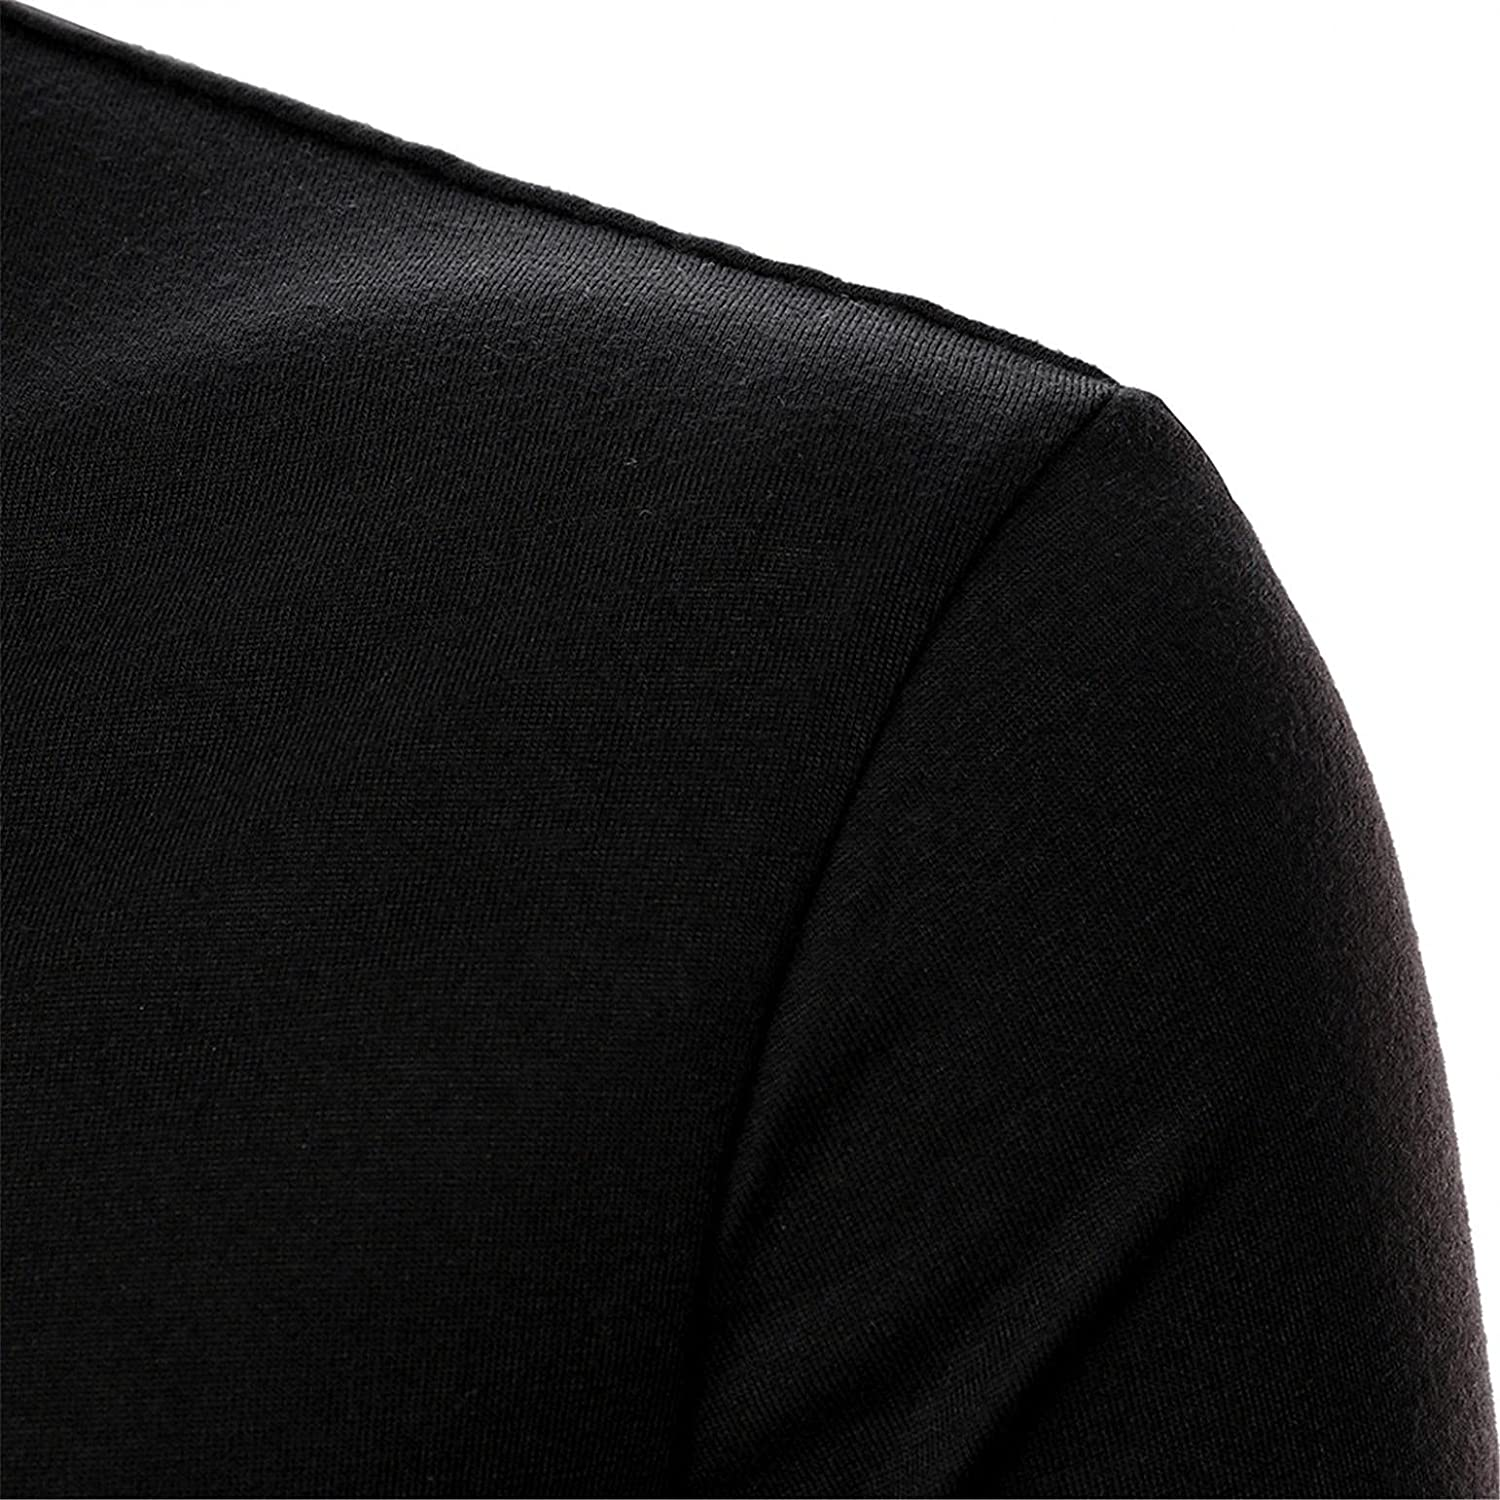 LEIYAN Mens Fashion Polo Shirts Long Sleeve Regular Fit Quarter Zip Athletic Outdoor Performance Tactical Tops